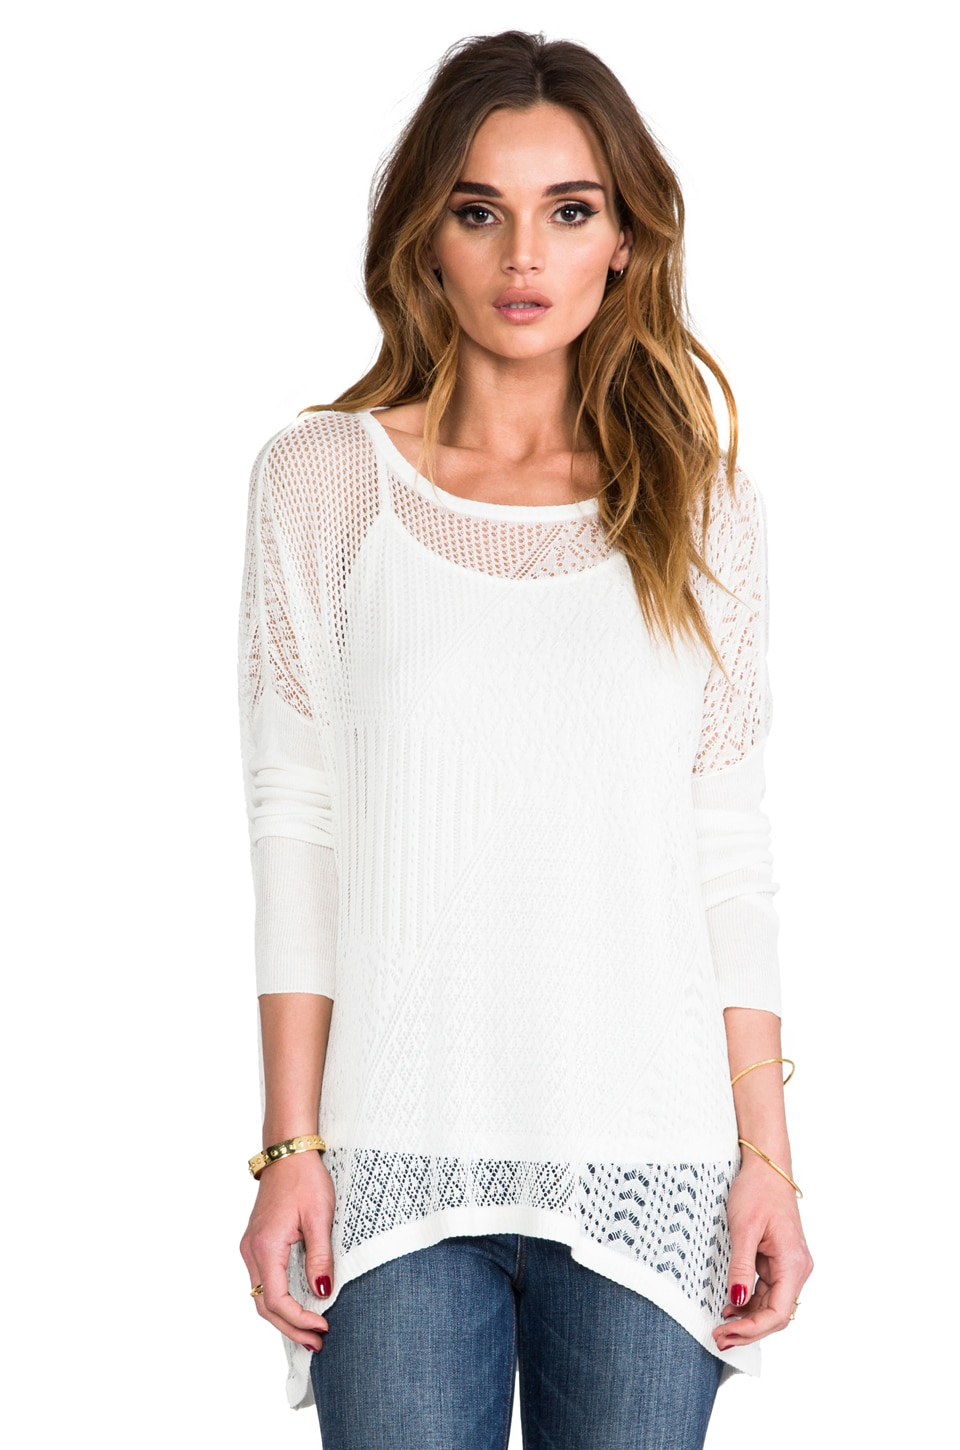 Ella Moss Tori Sweater in Natural